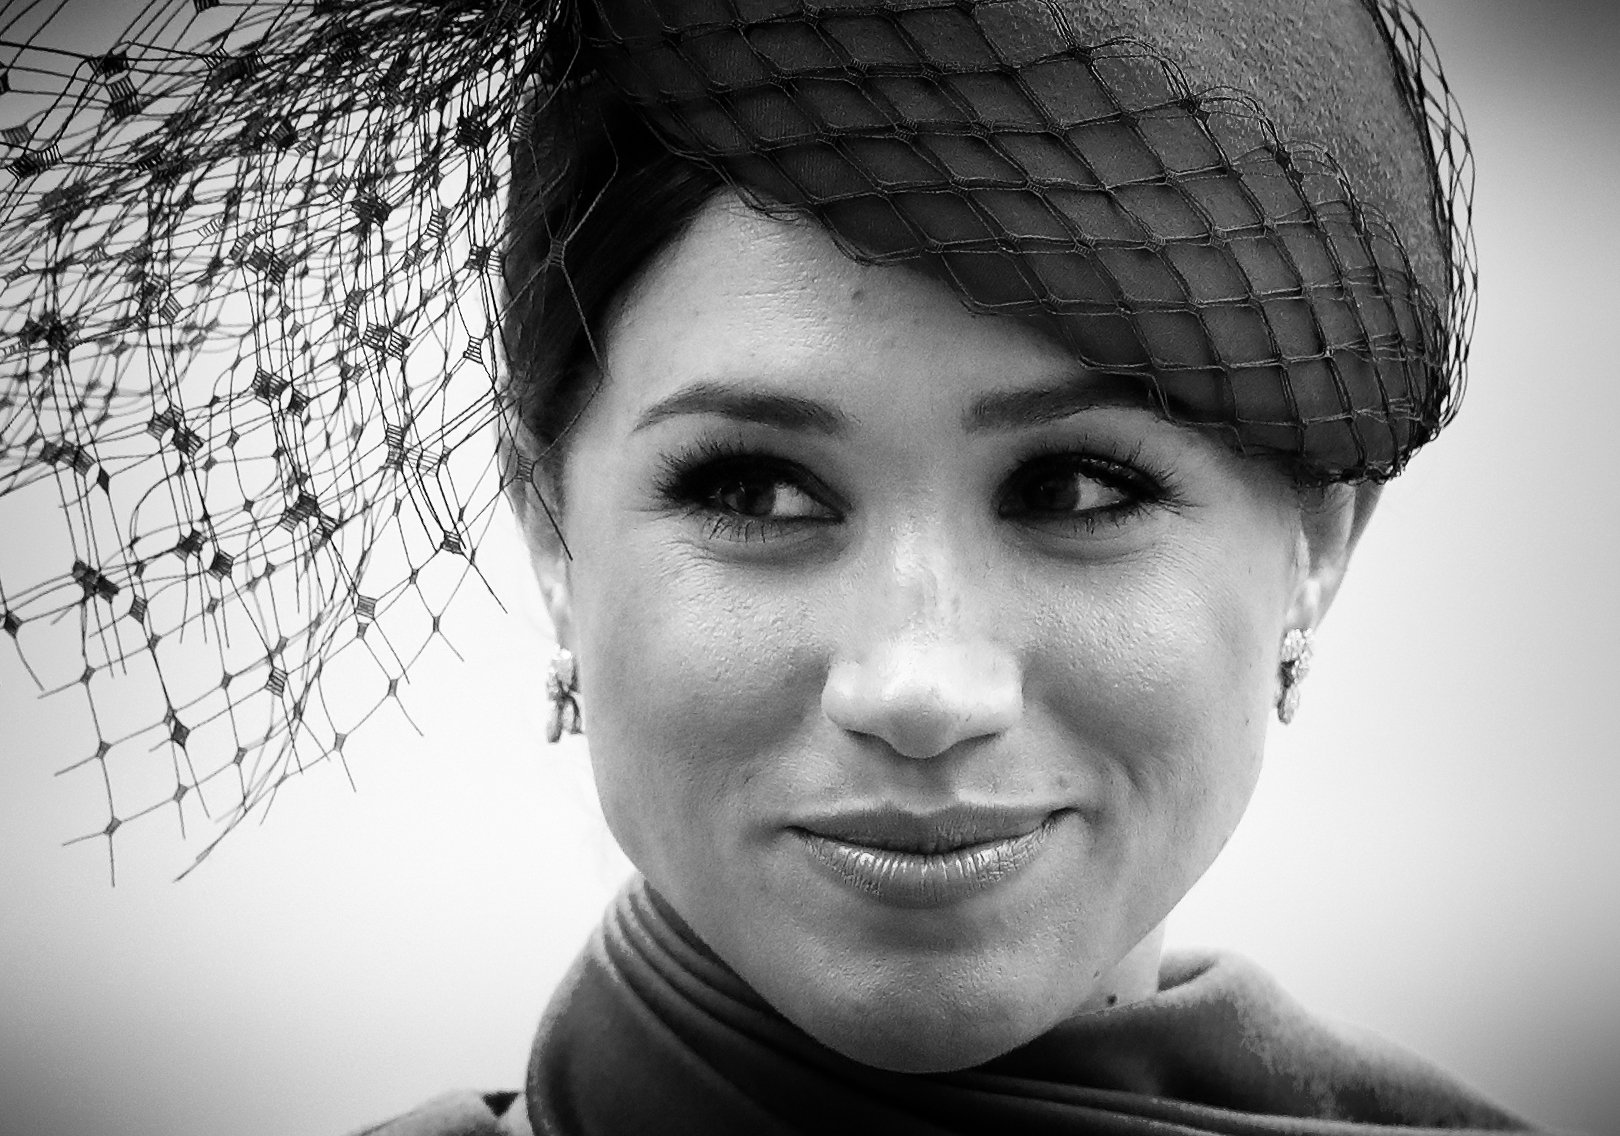 Meghan Markle, Duchess of Sussex attends the Commonwealth Day Service 2020 at Westminster Abbey on March 9, 2020 in London, England.   Source: Getty Images